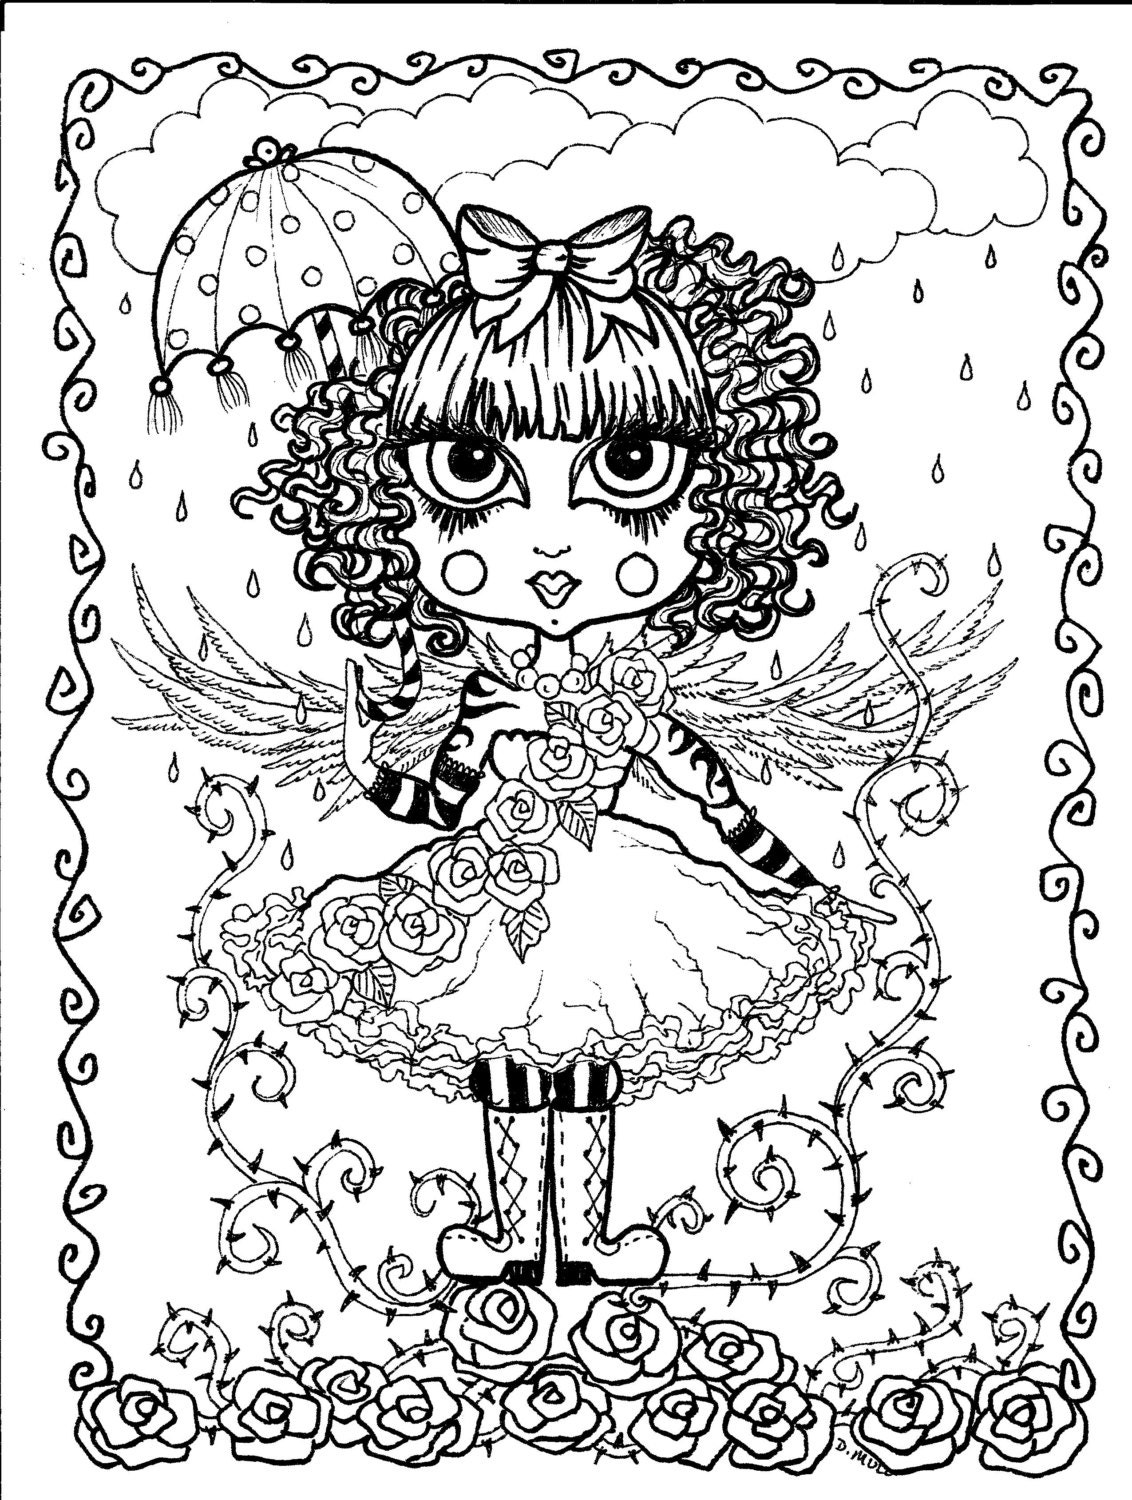 gothic art coloring pages - photo#32